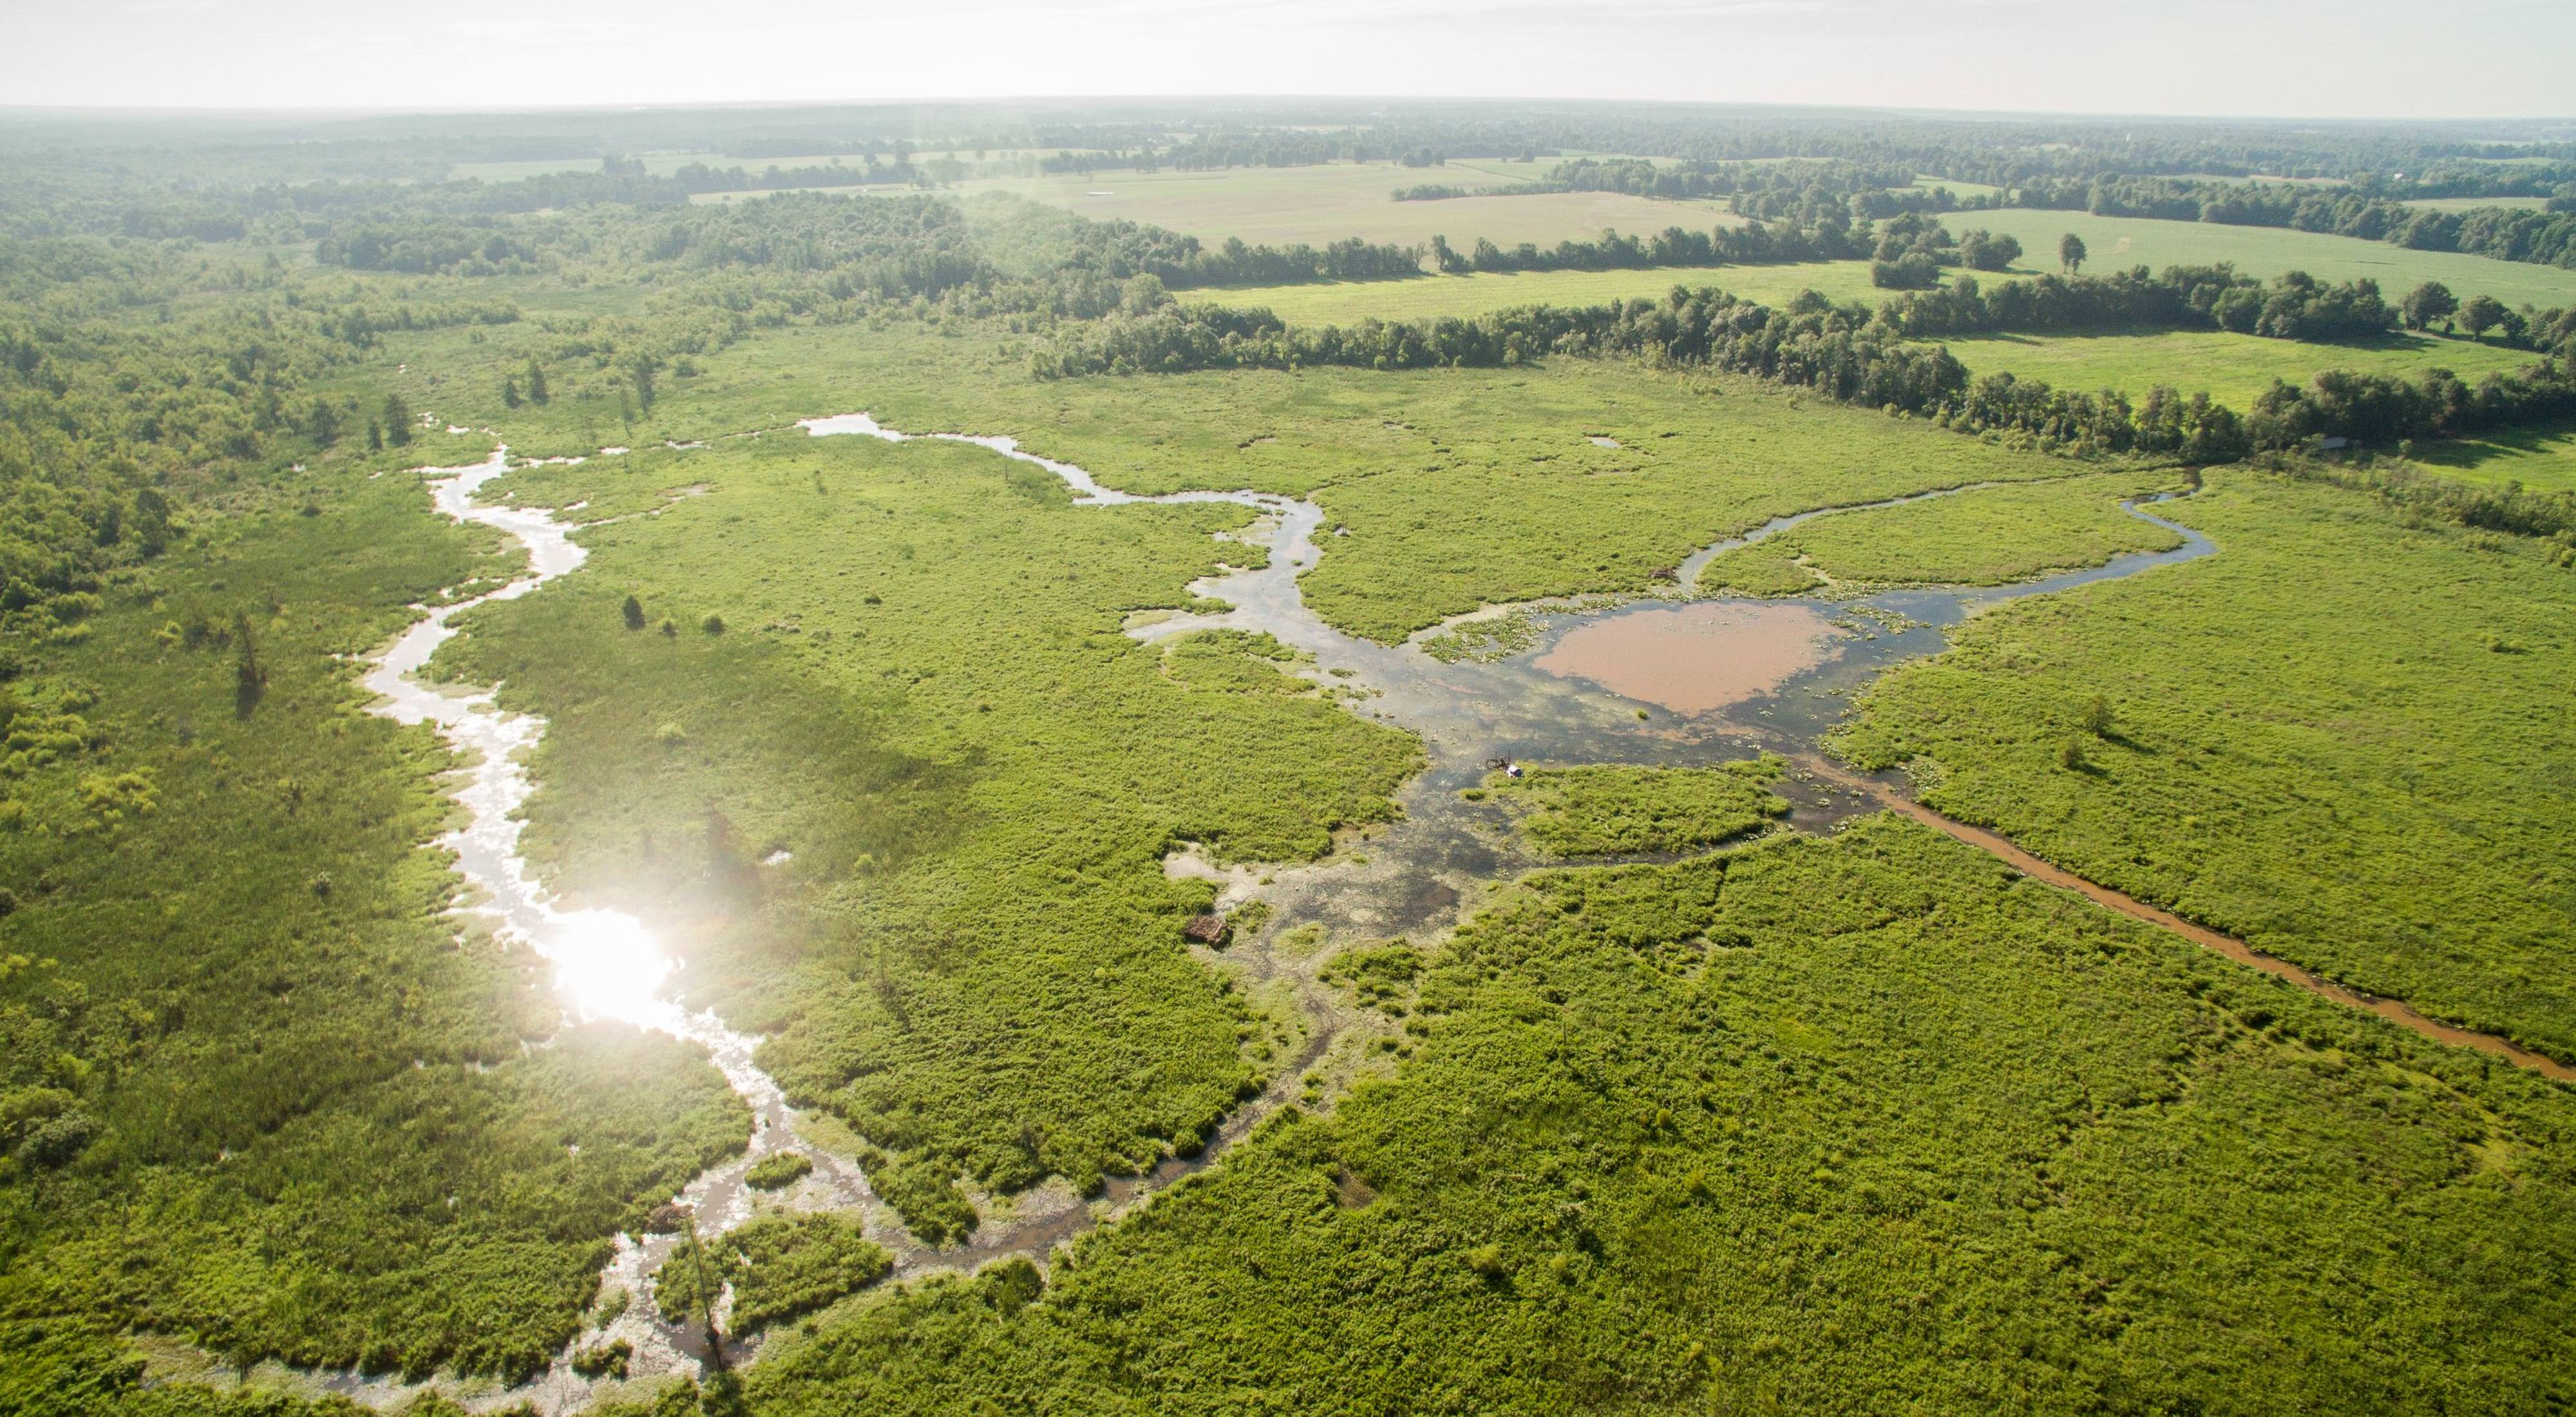 An image of a wetland